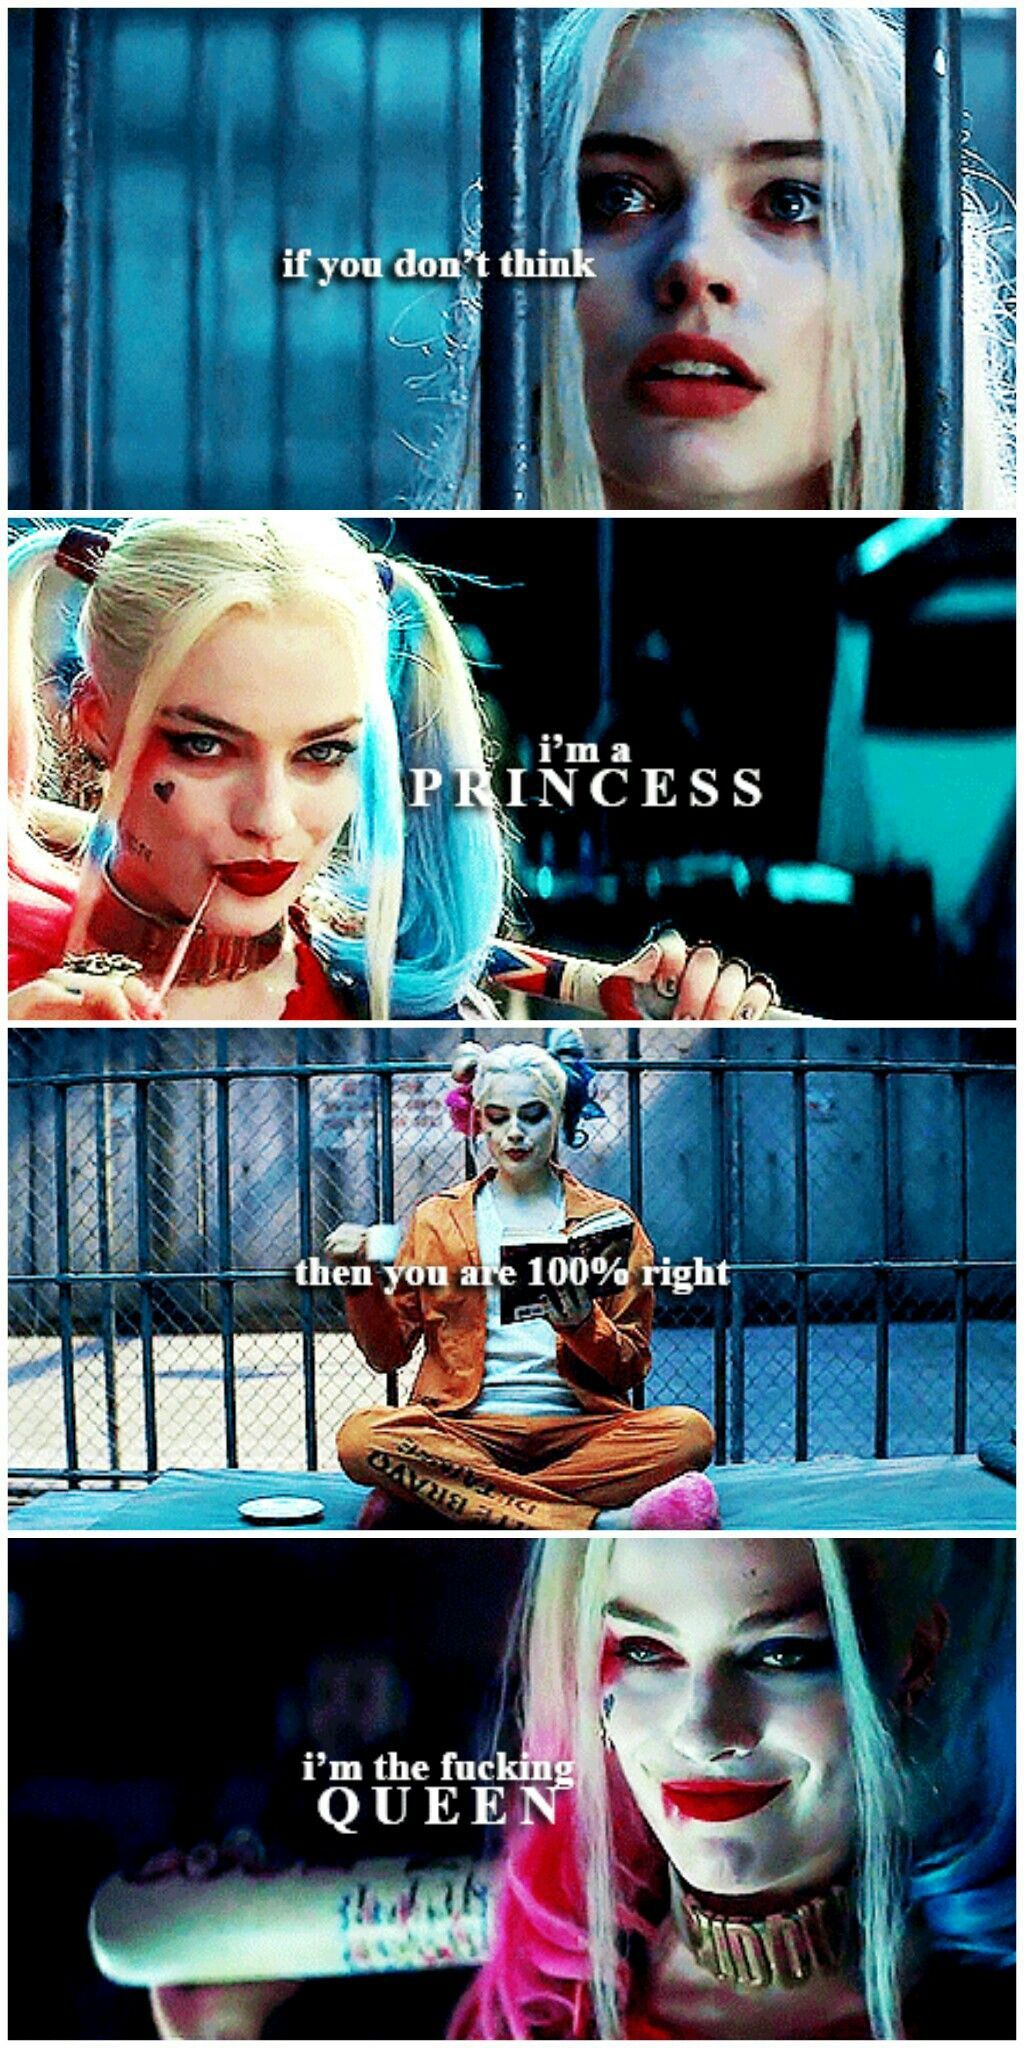 And God help anyone who disrespected the queen. (x) quinn